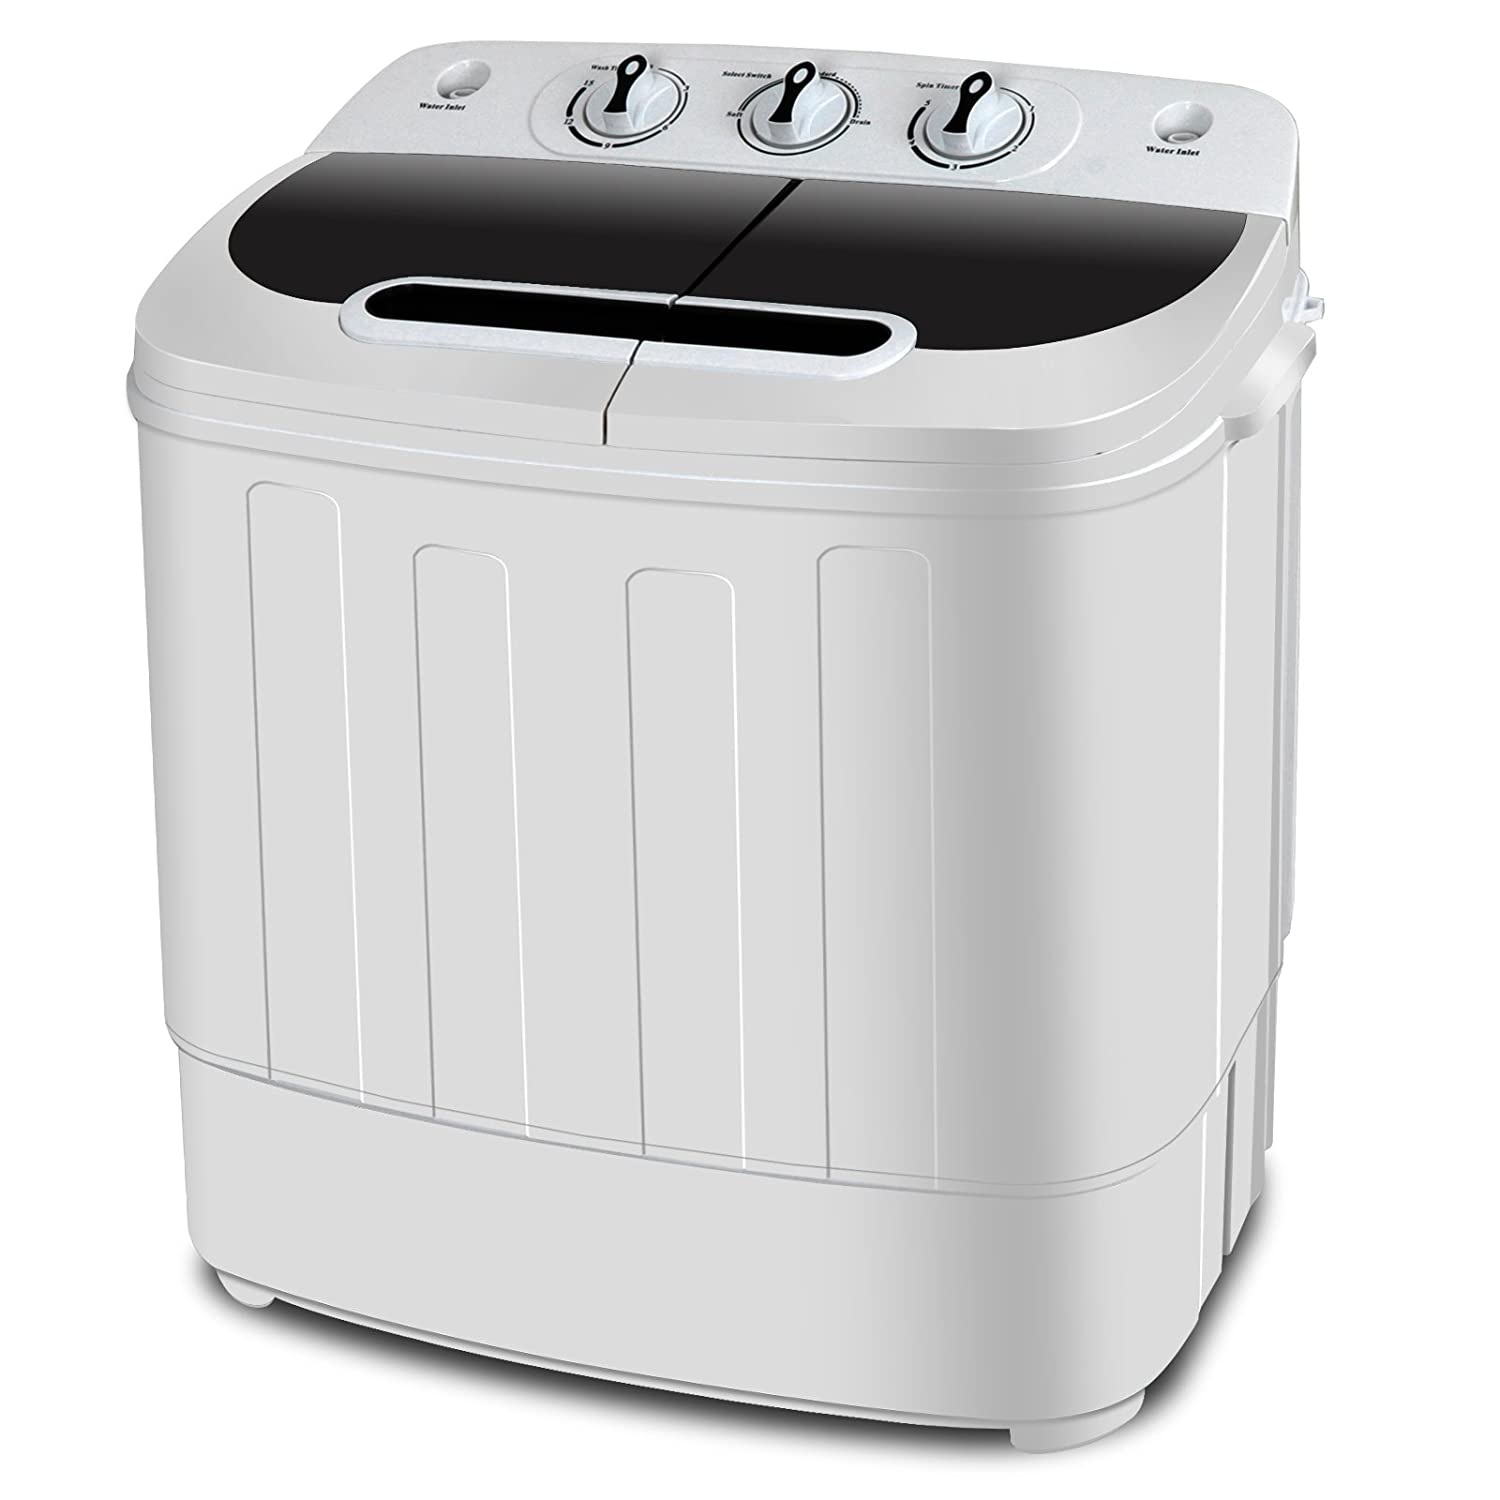 SUPER DEAL Portable Washer Mini Twin Tub Washing Machine 17.6 lbs w/78.8'' Inlet Hose, Gravity Drain Pump, For Camping, Apartments, Dorms, College Rooms, RV's, Delicates and more RV' s